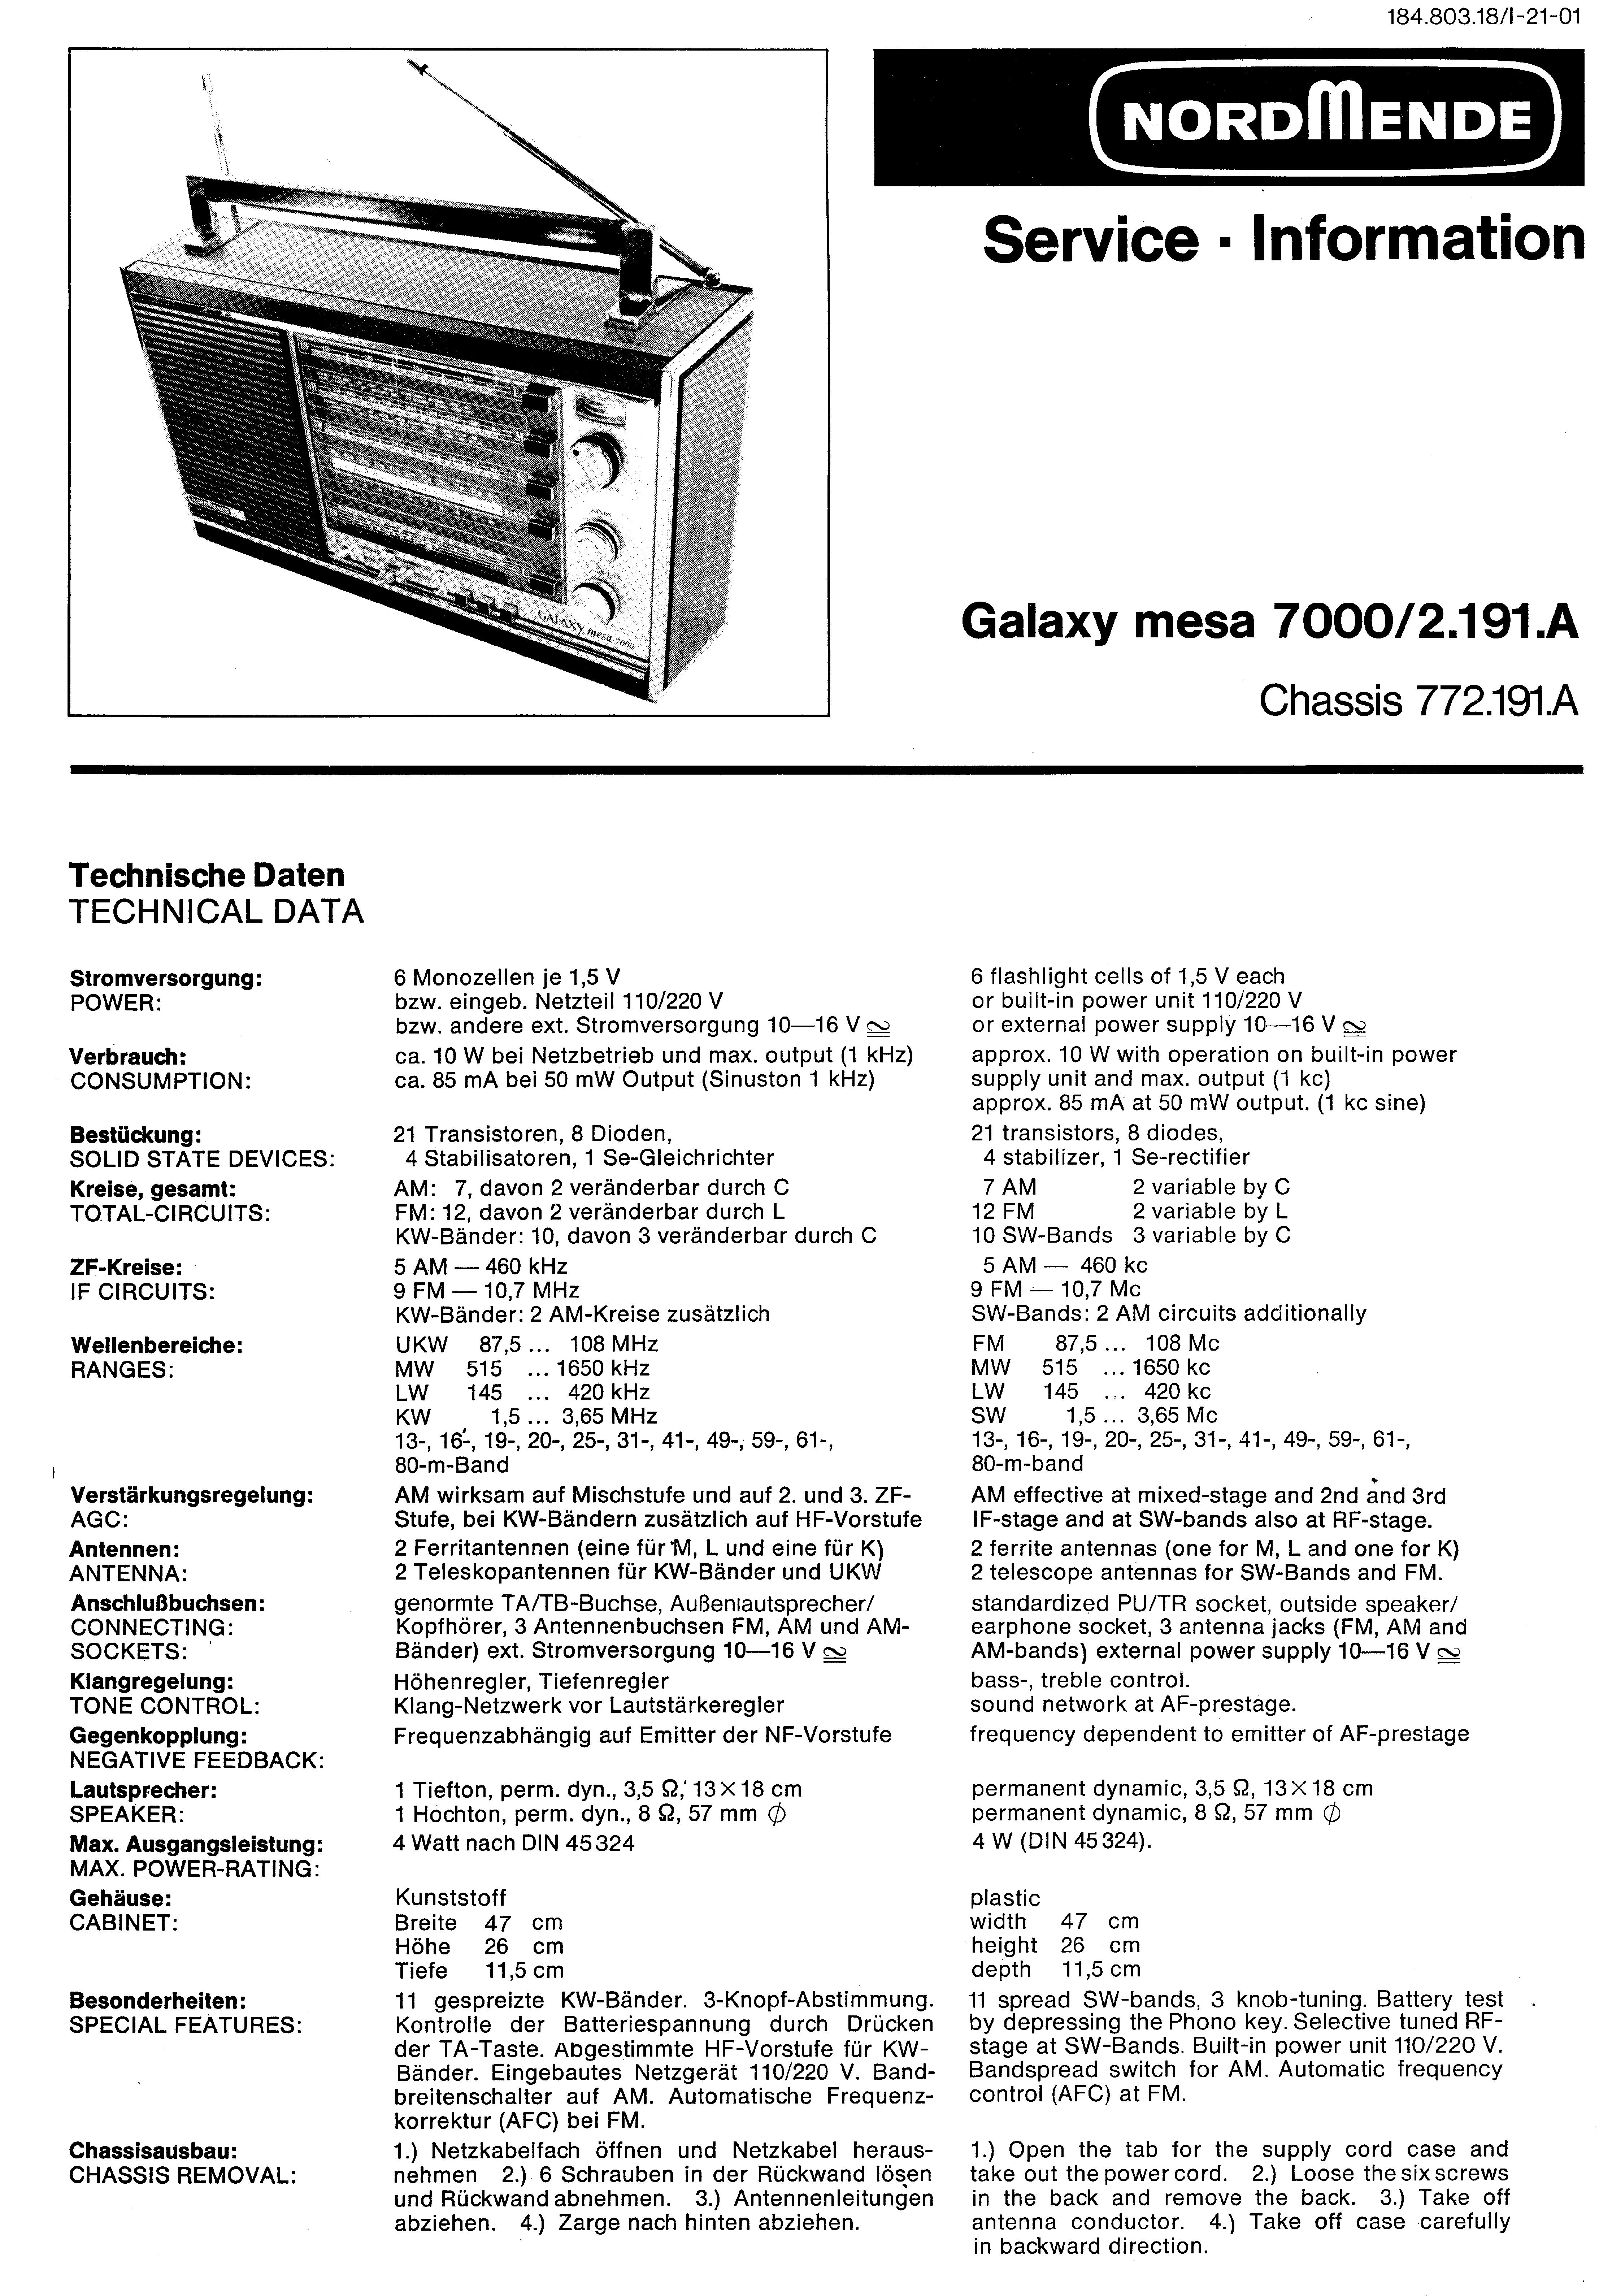 NORDMENDE GALAXY MESA 7000 SM Service Manual download